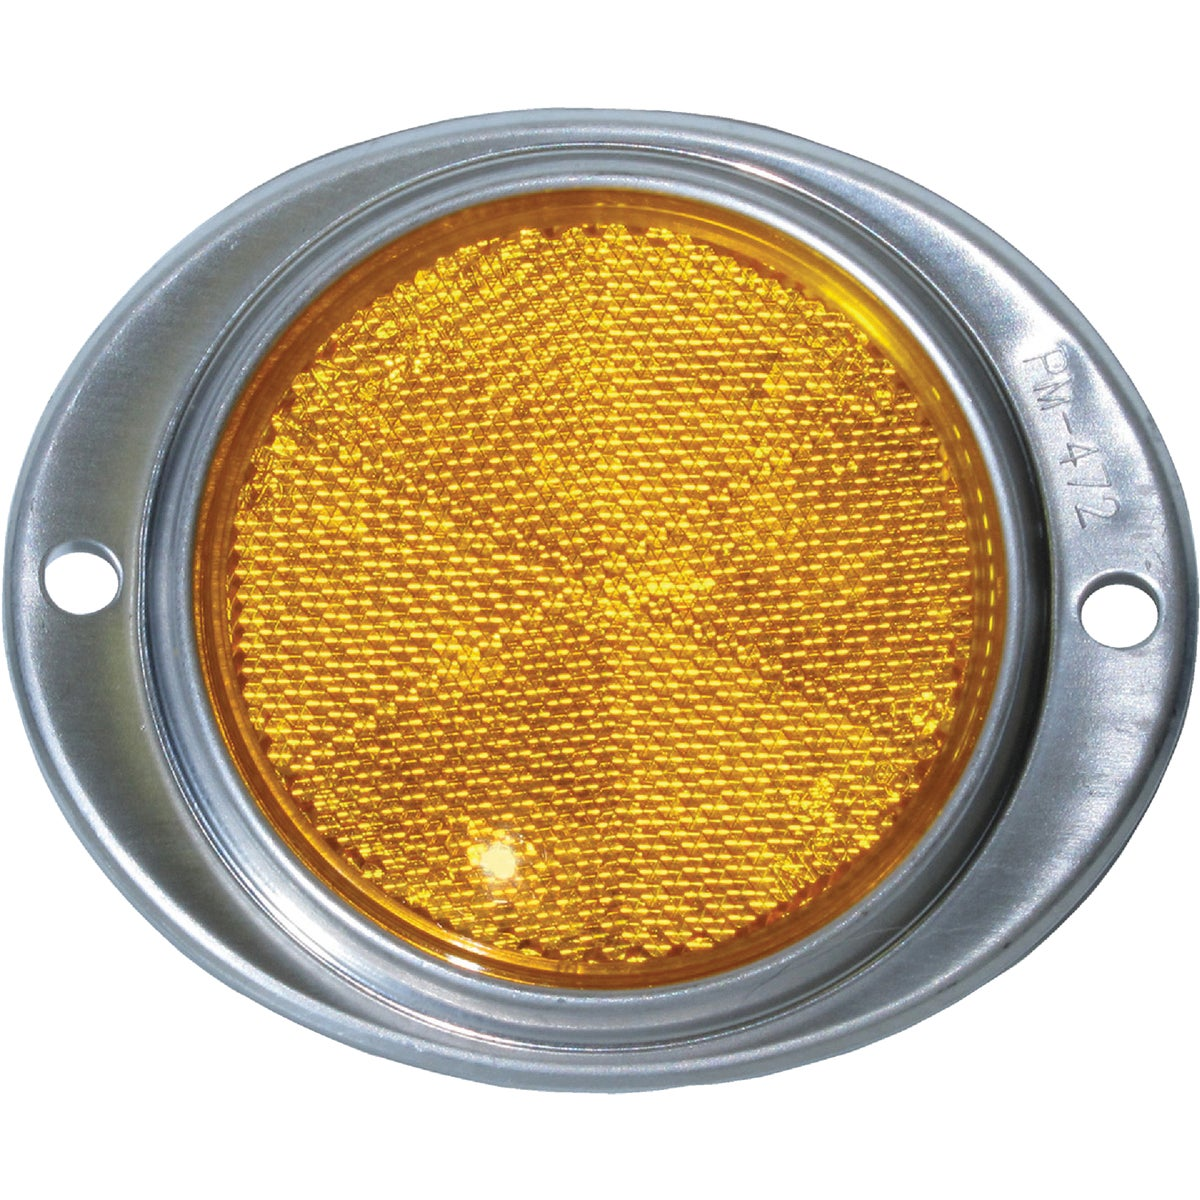 "3"" AMBER RND REFLECTOR - V472A by Peterson Mfg Co"